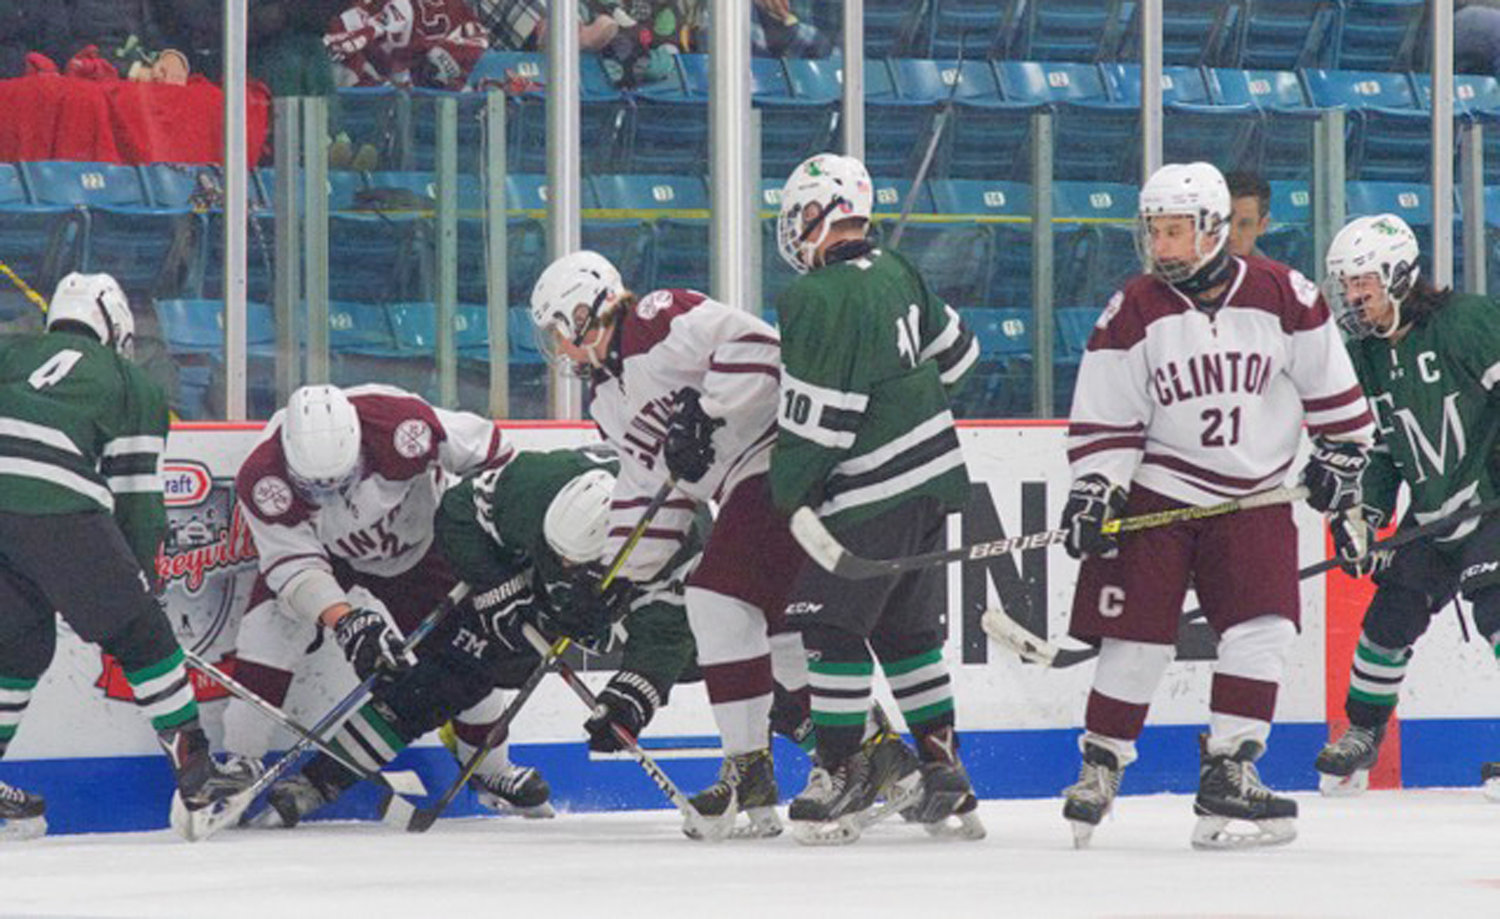 TIED UP — Players from the Fayetteville-Manlius Hornets and the Clinton Warriors battle for the puck at their feet in the Clinton holiday tournament championship game on Dec. 28 at the Clinton Arena. F-M won 2-0.